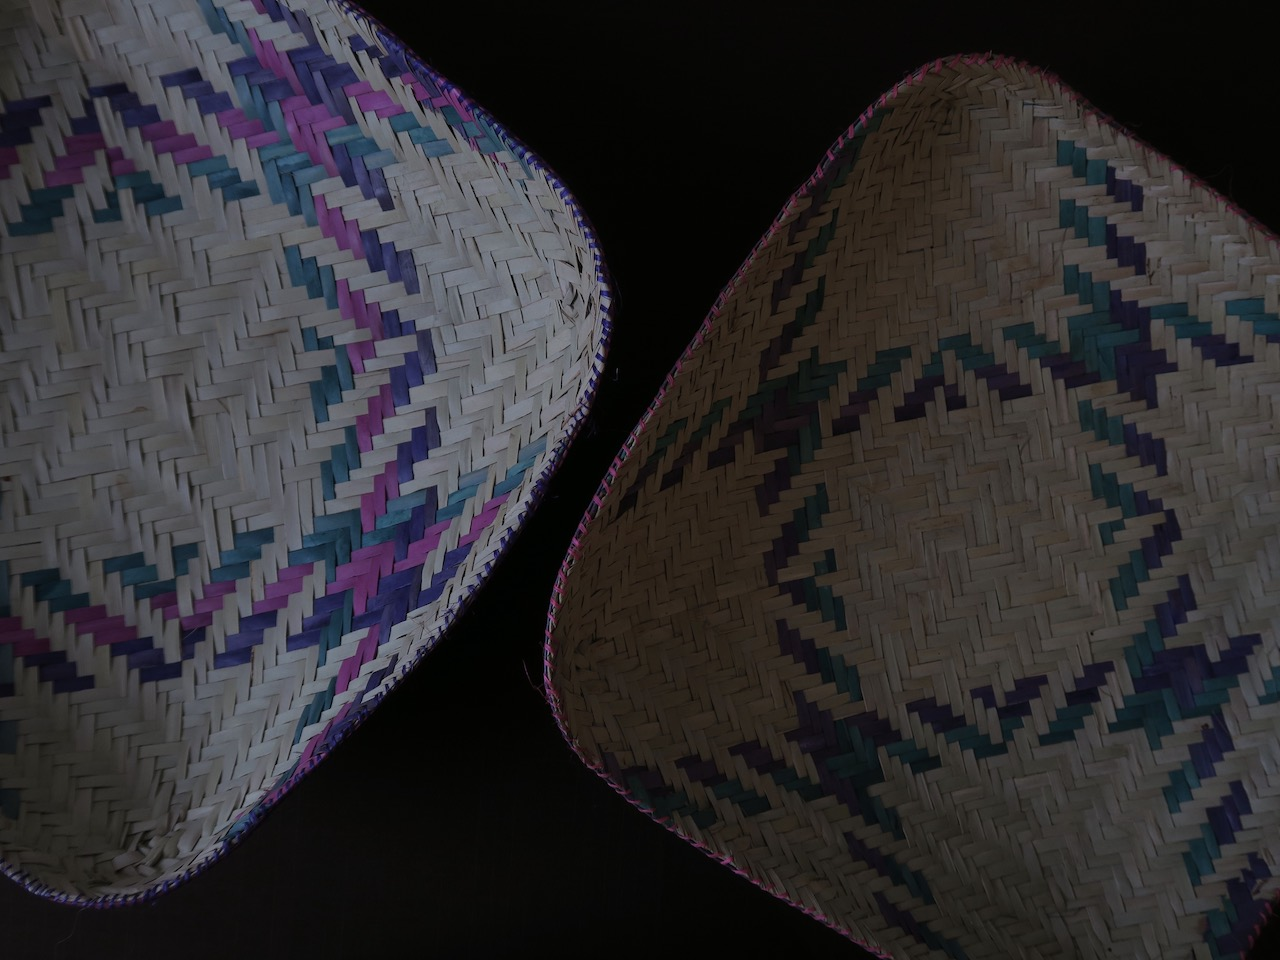 Woven baskets from Madagascar